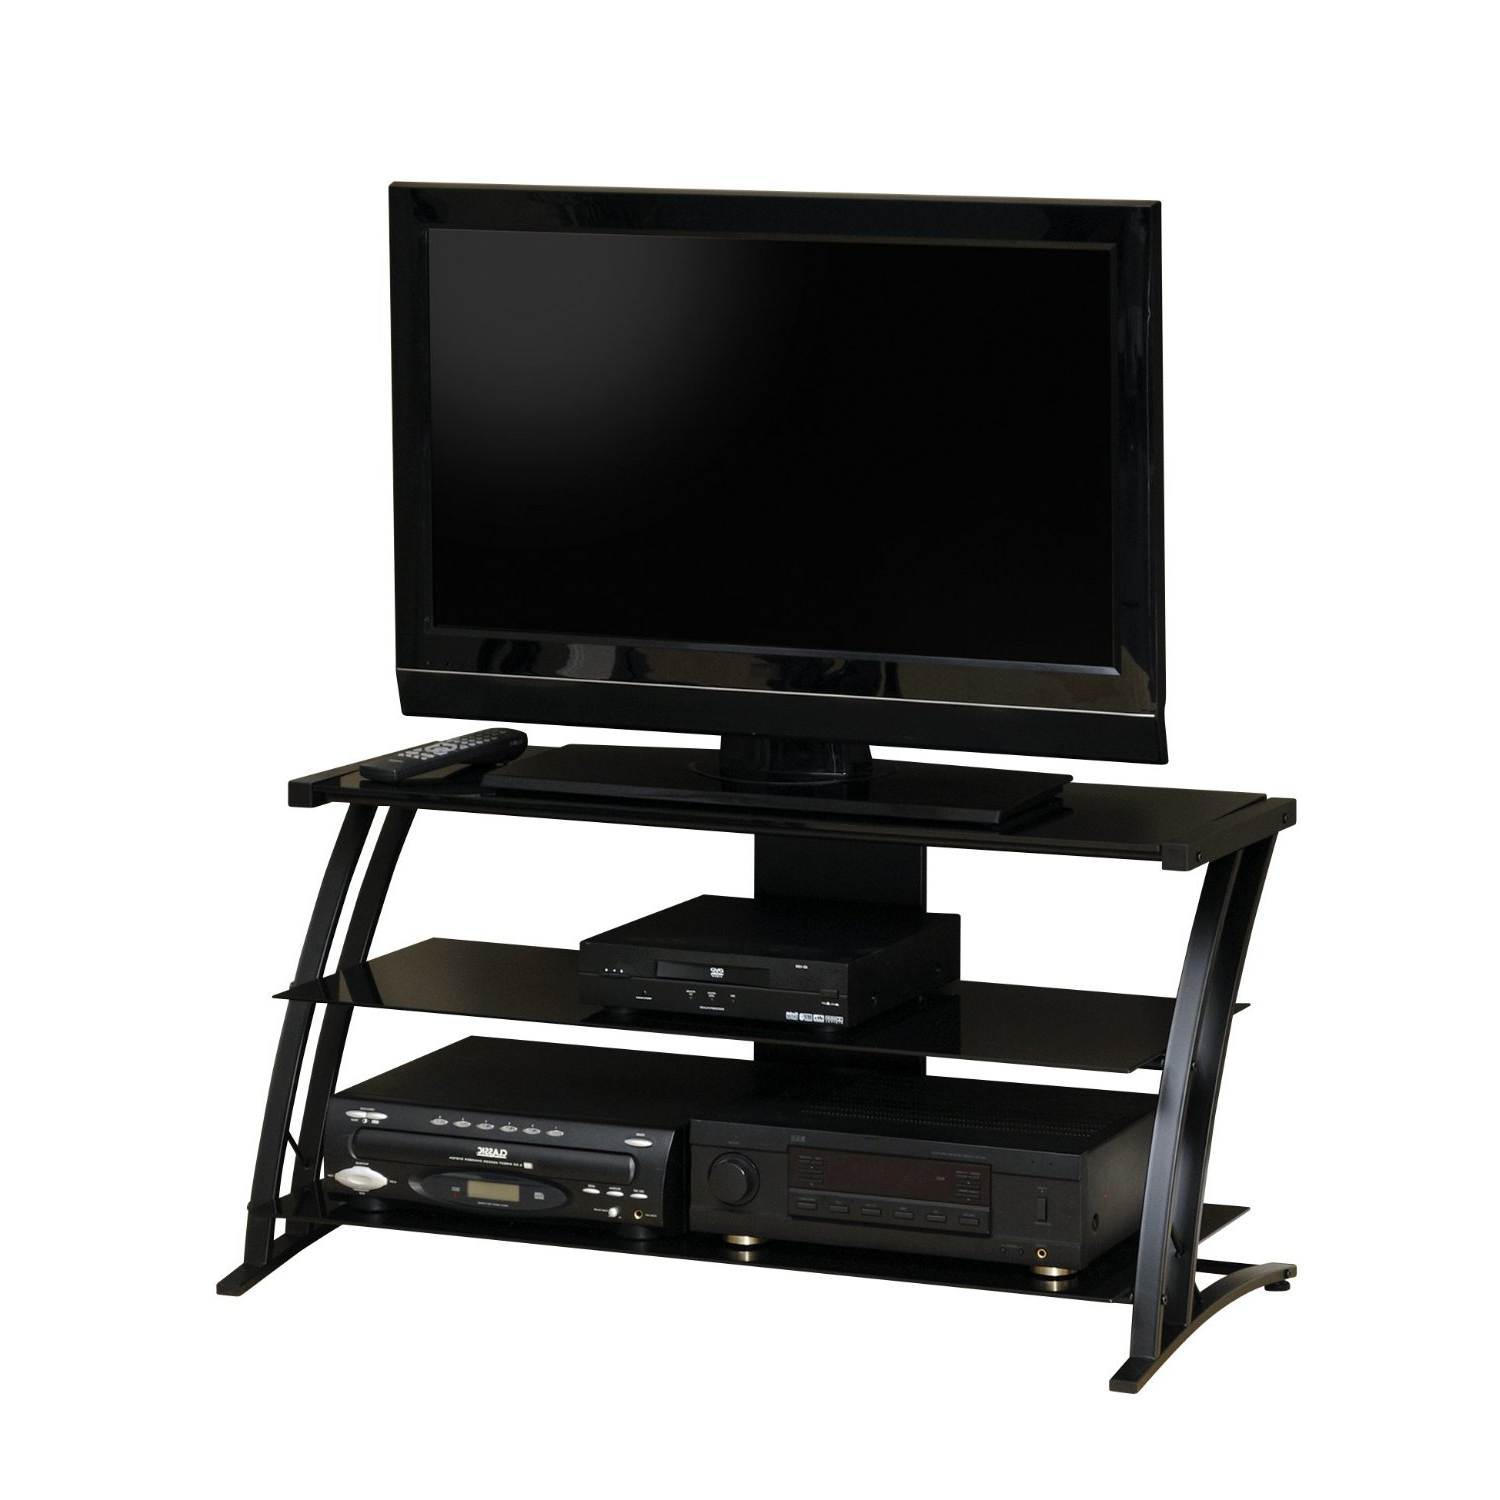 Unique Tv Stands For Flat Screens With Newest Tv Stands: 7 Best Selling Flat Screen Tv Stands 2017 (Gallery 9 of 20)